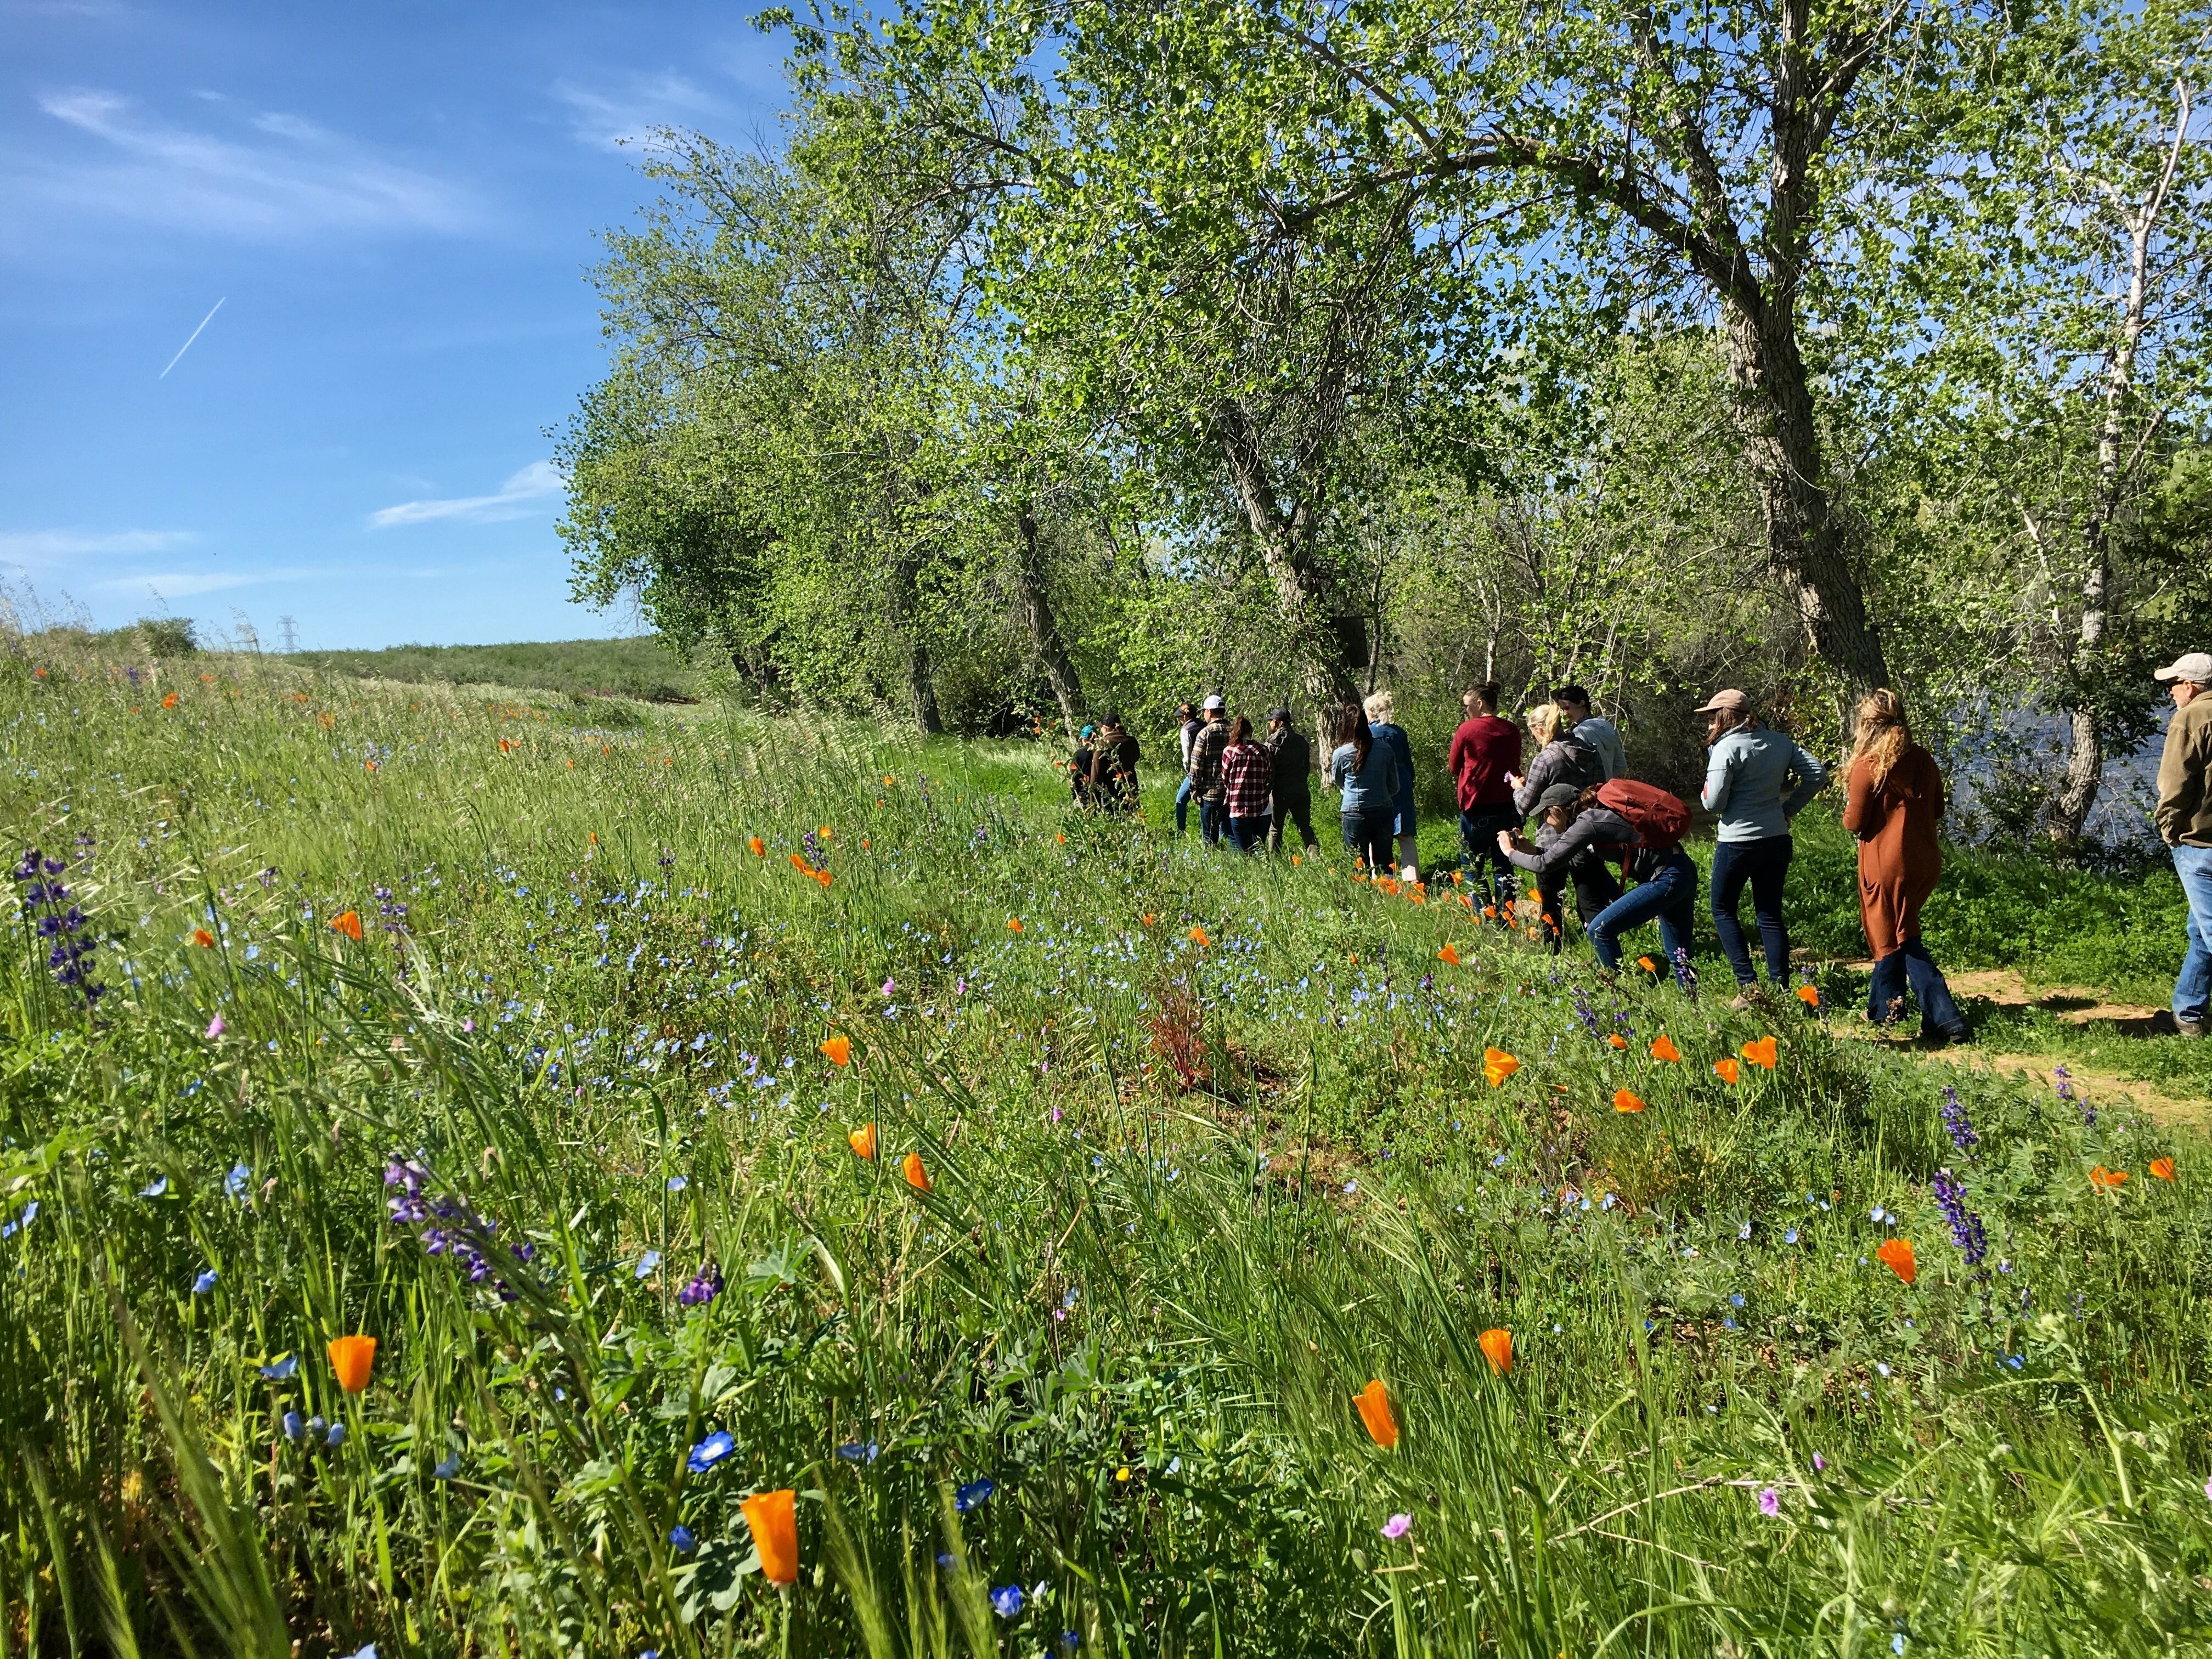 Xerces staff and almond growers walking in a line through pollinator meadow with orange and purple flowers.